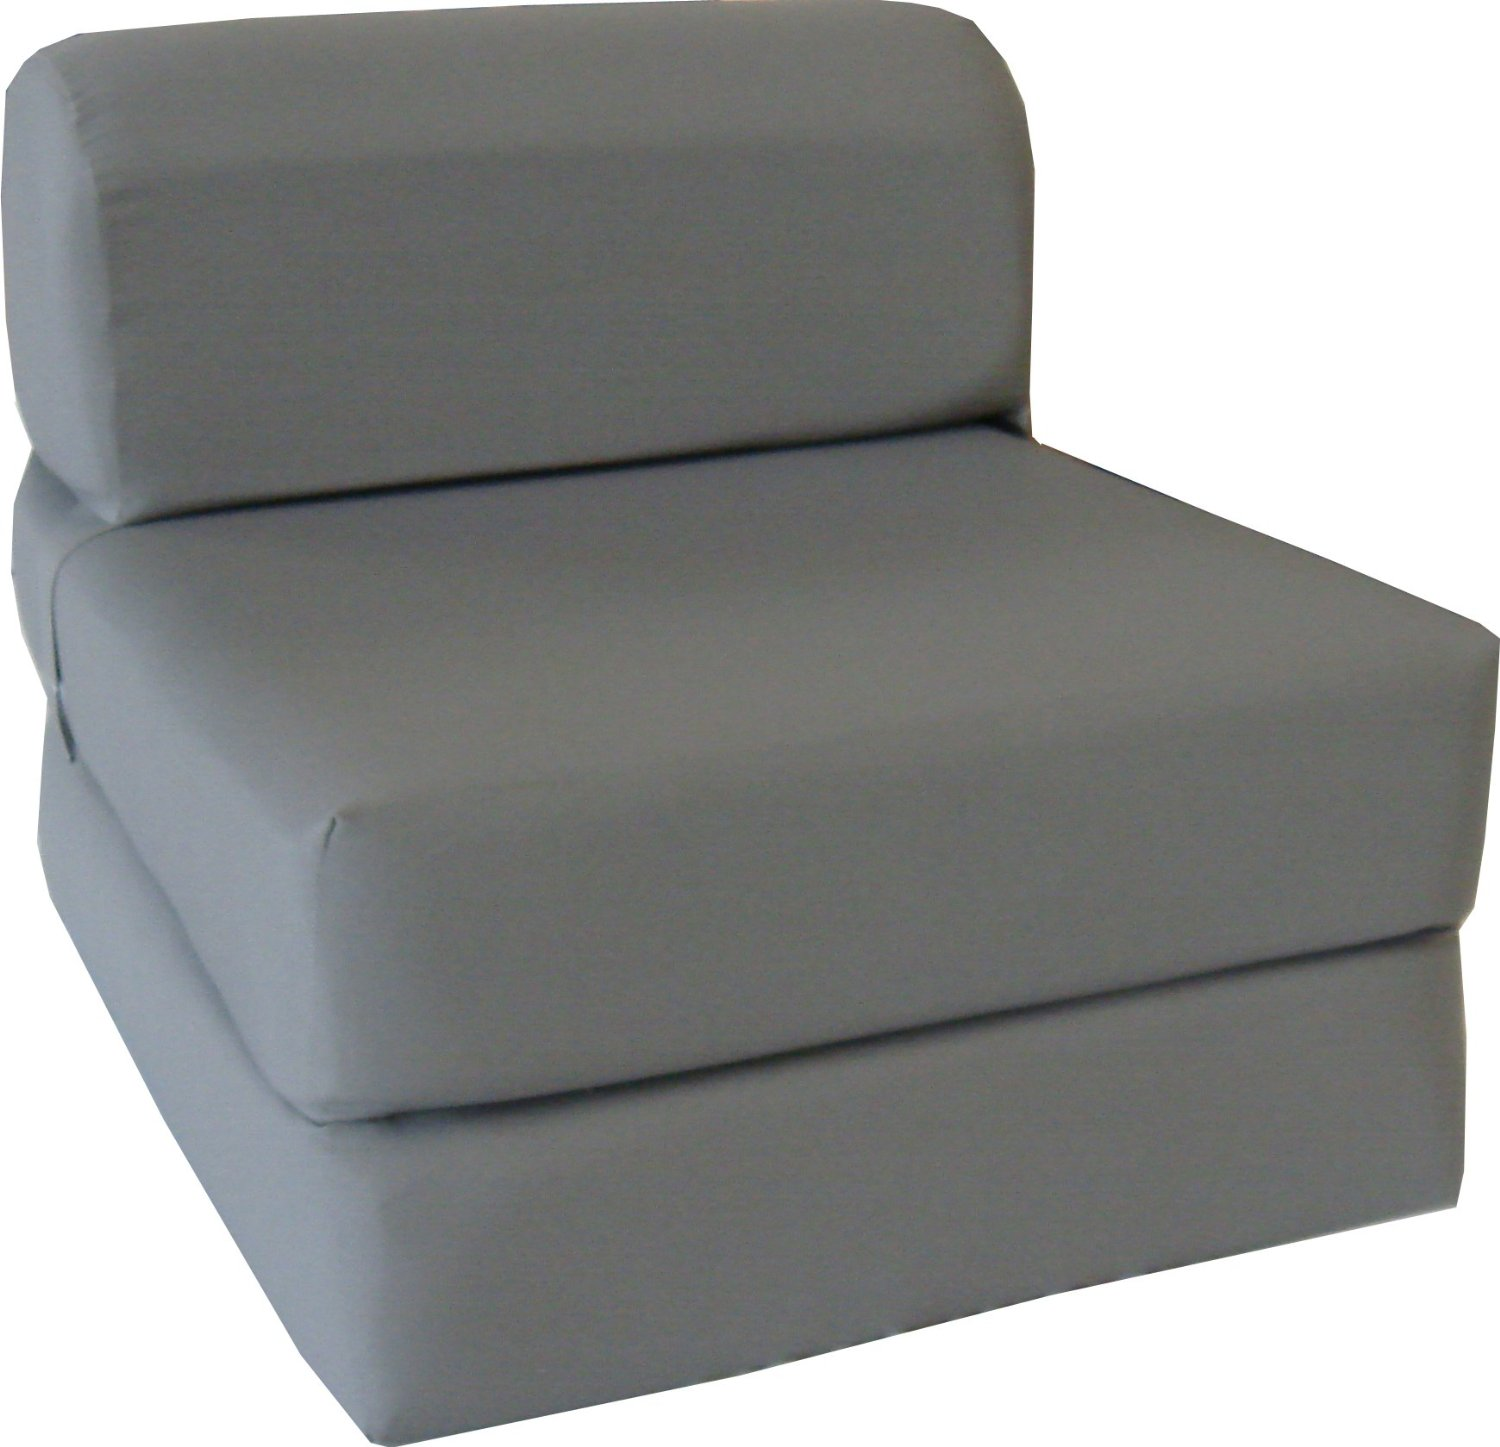 foam for sofa seats india lane leather reclining and loveseat pads sofas replacement cushions custom couch